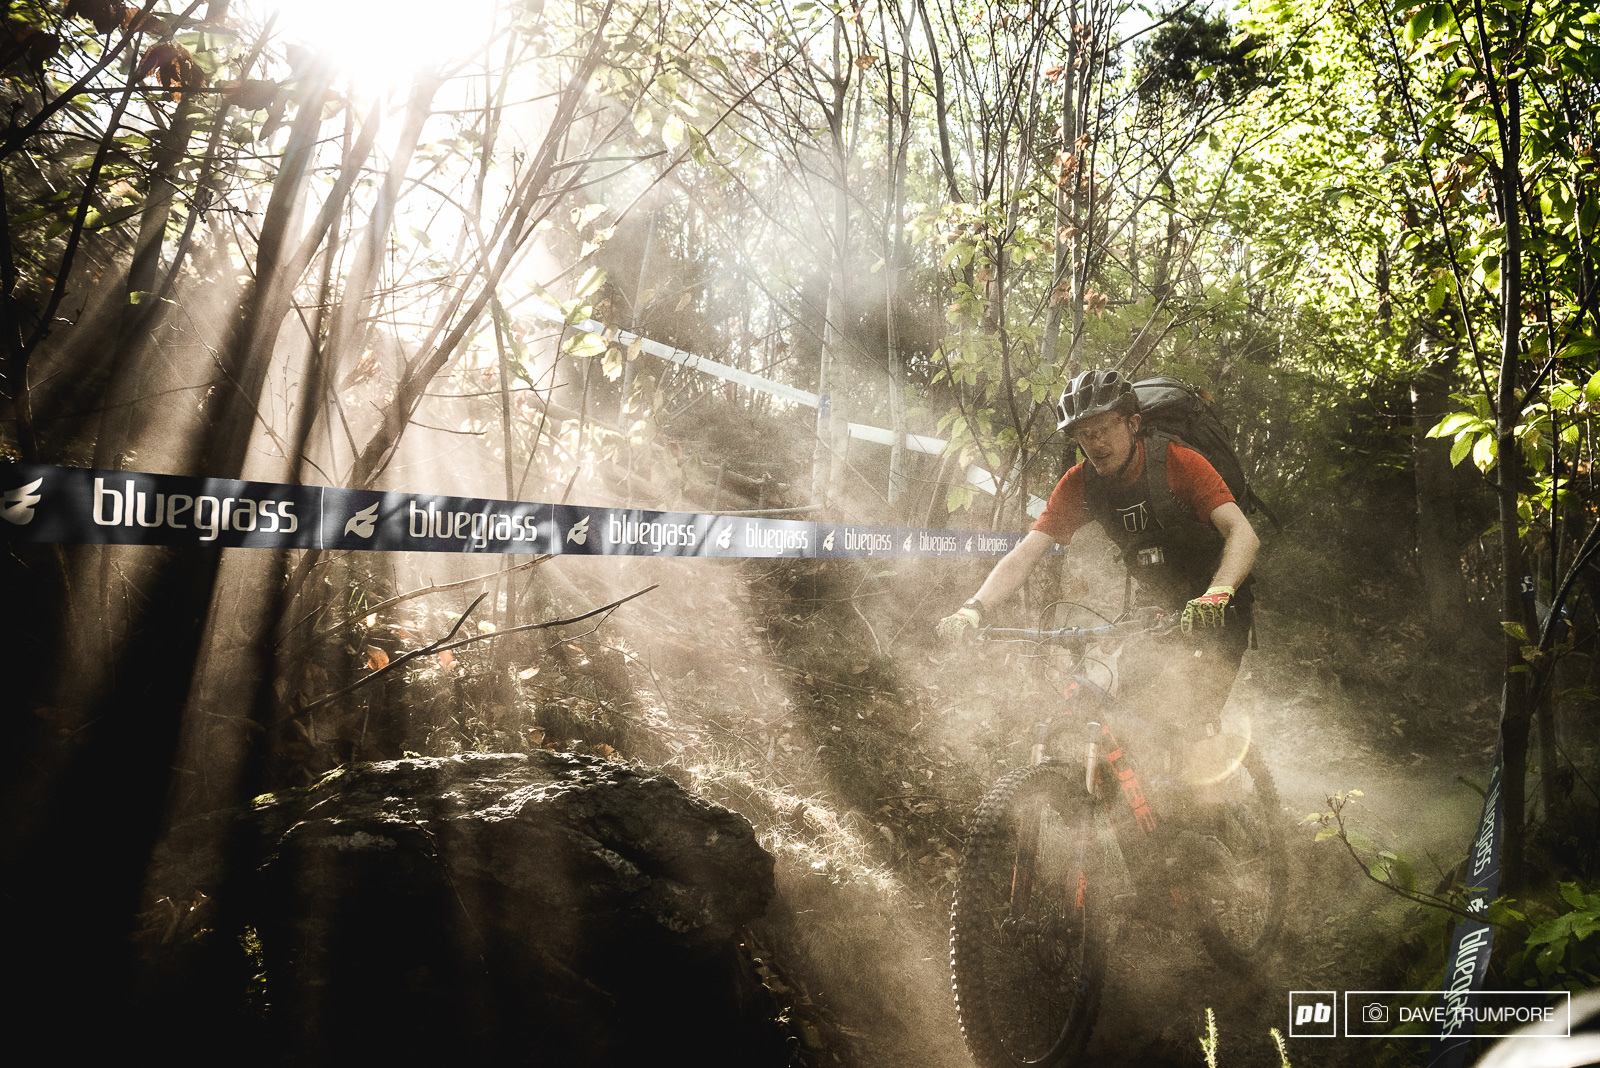 After last years torrential rain it s nice to find things a bit more dusty this time around in Finale Ligure.